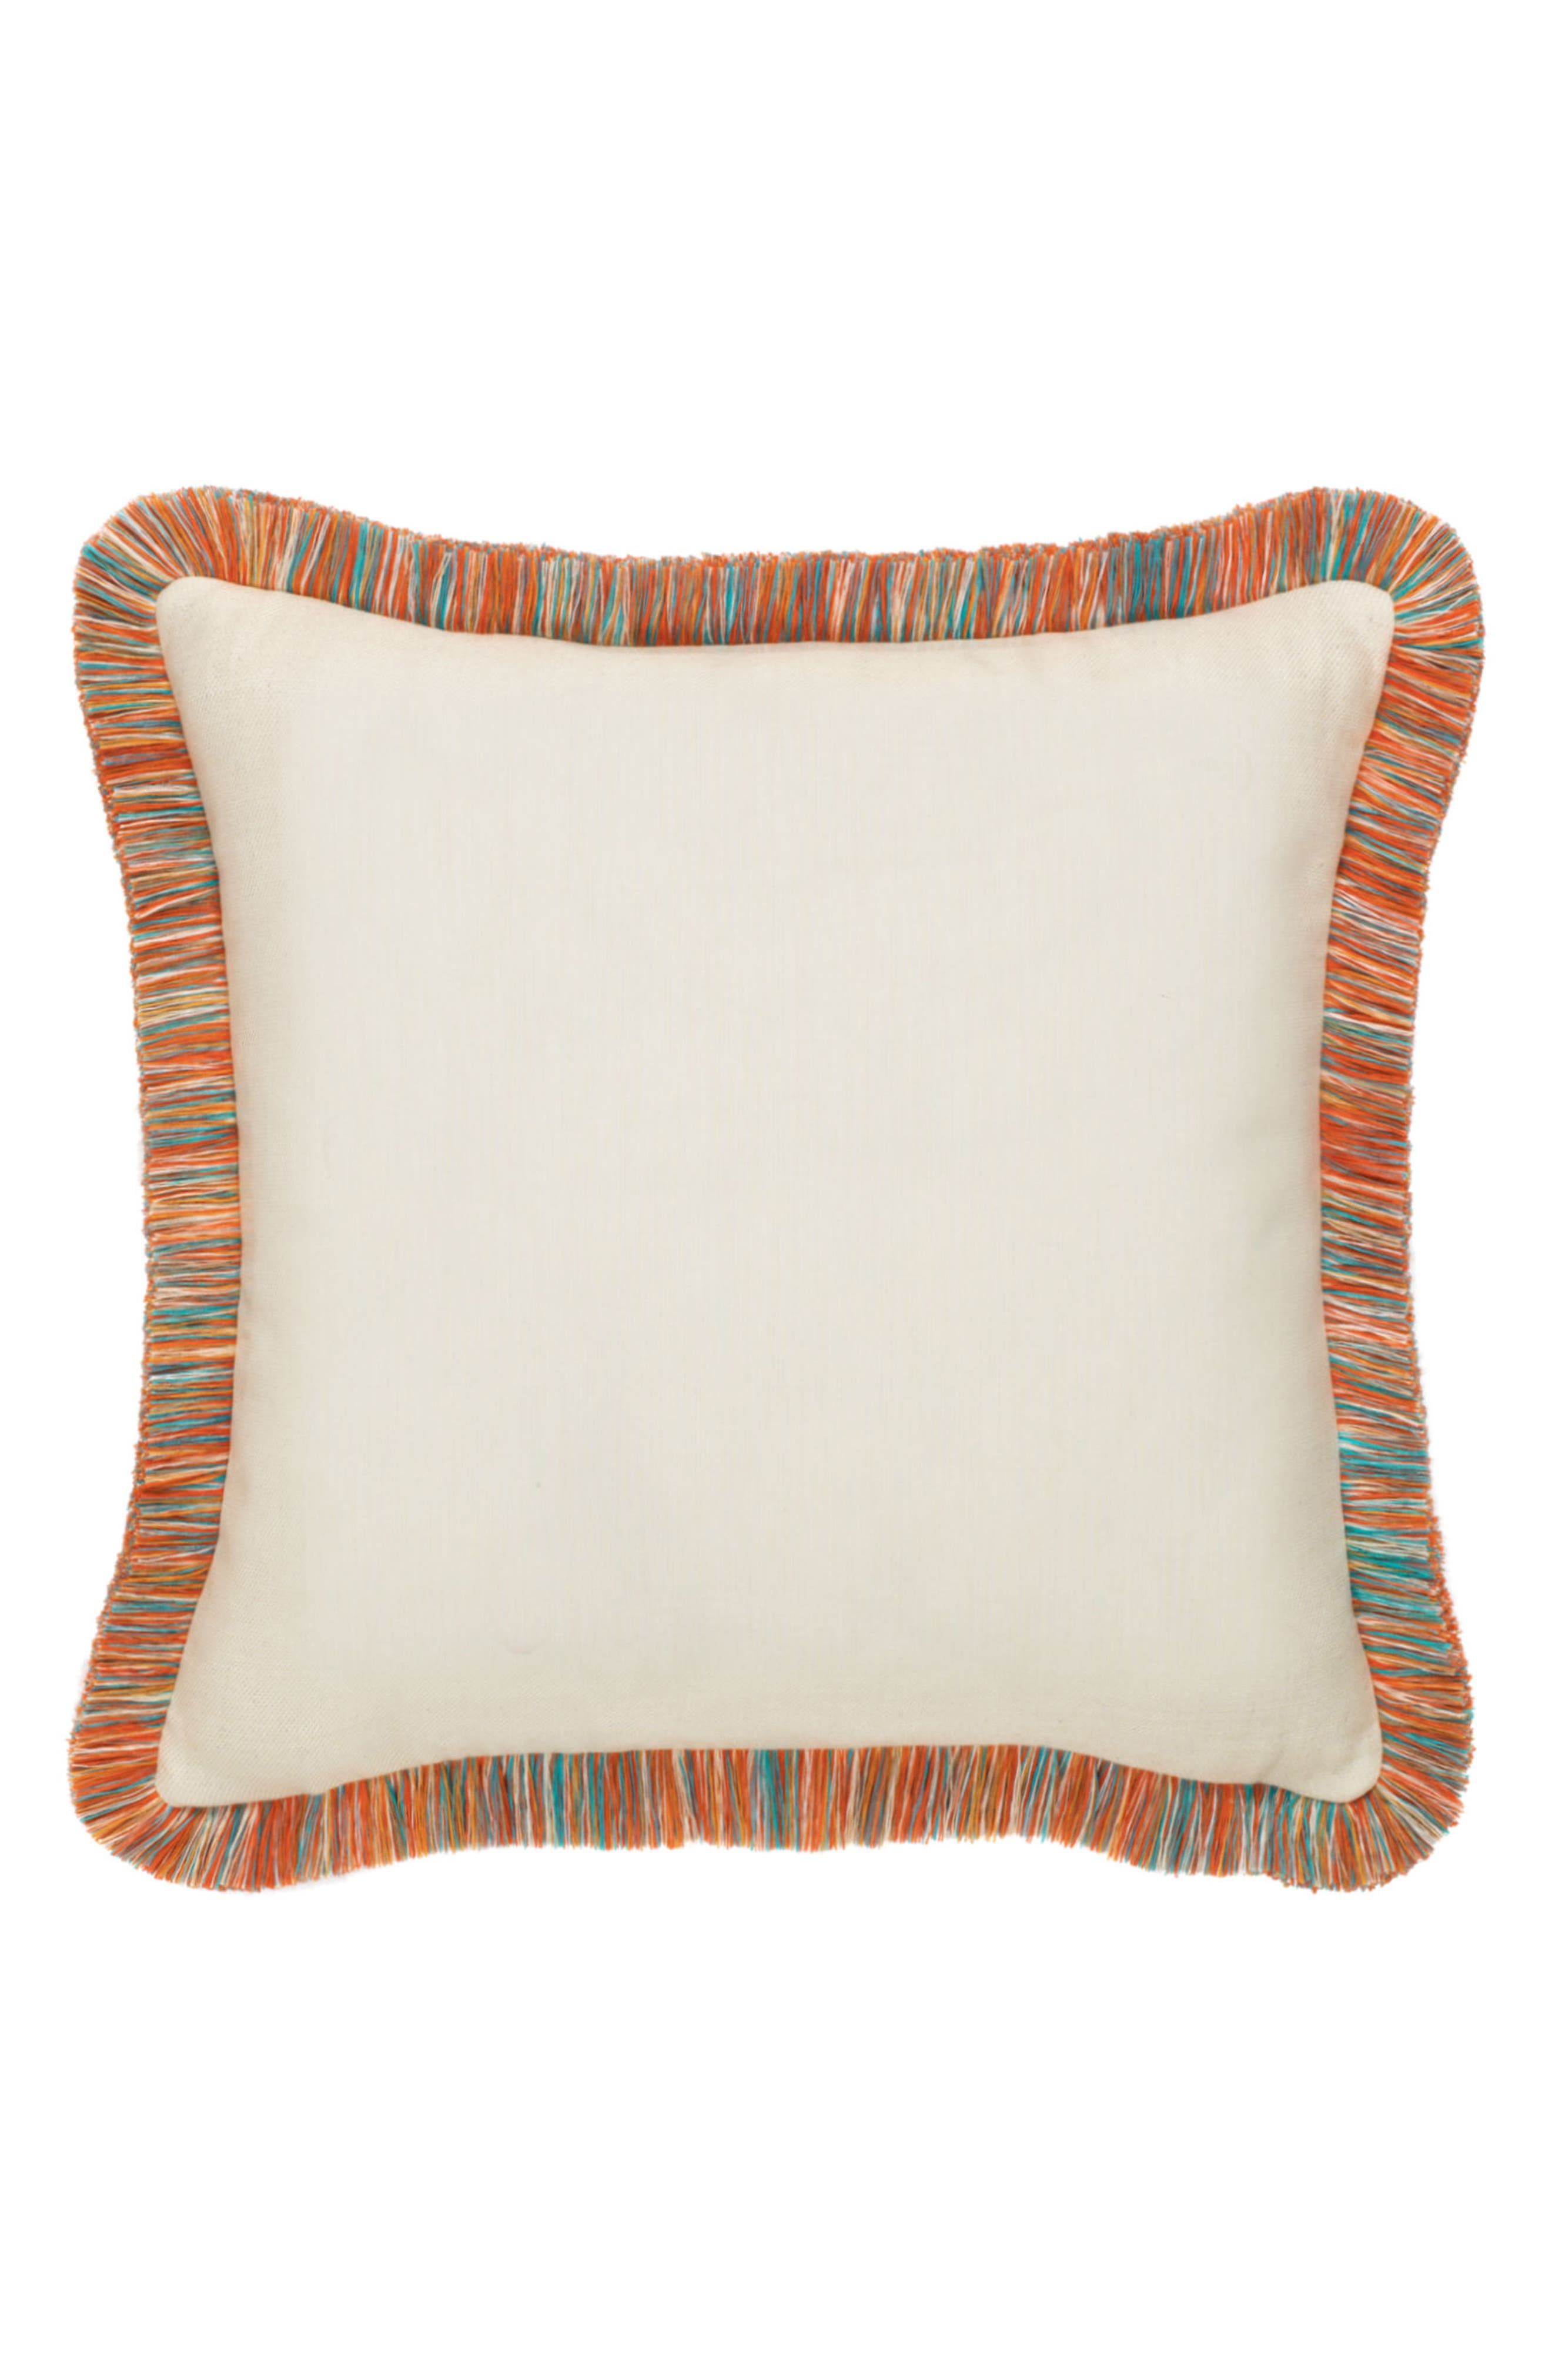 Mariposa Lagoon Indoor/Outdoor Accent Pillow,                             Alternate thumbnail 2, color,                             ORANGE/ IVORY